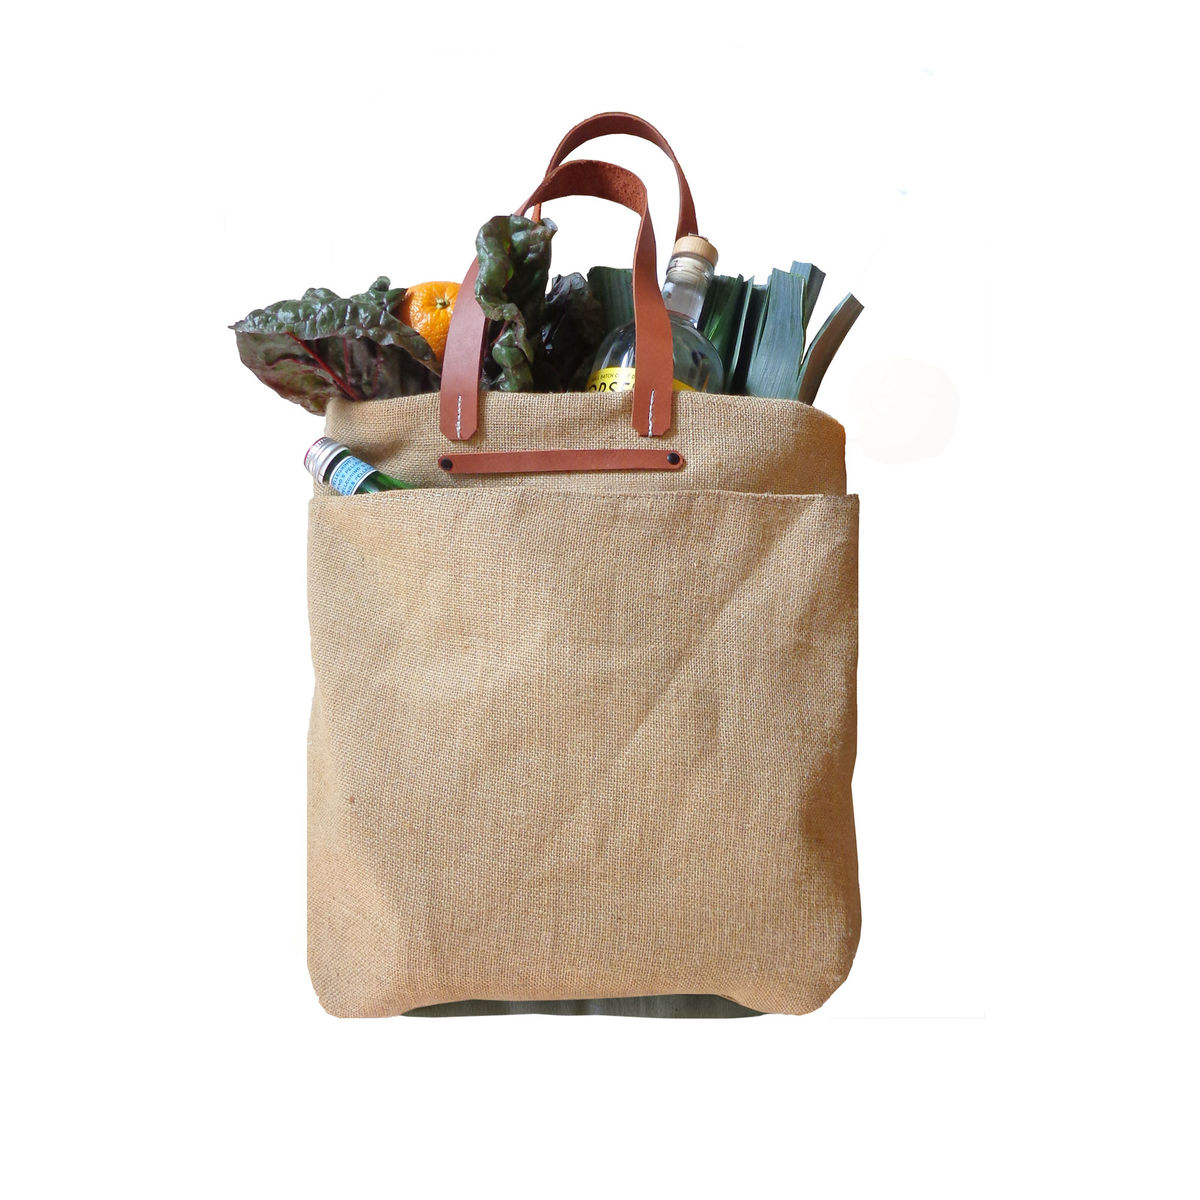 3cadf7086c42 Everything Shopper Tote w  Leather Handles - Jute and Olive ...